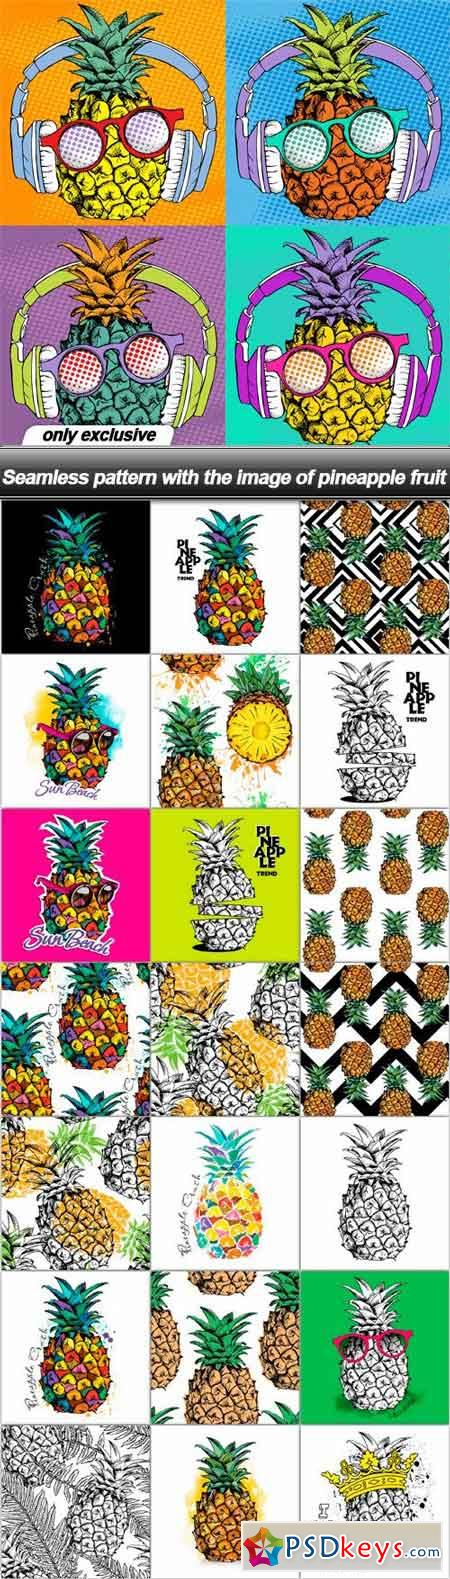 Seamless pattern with the image of pineapple fruit - 38 EPS